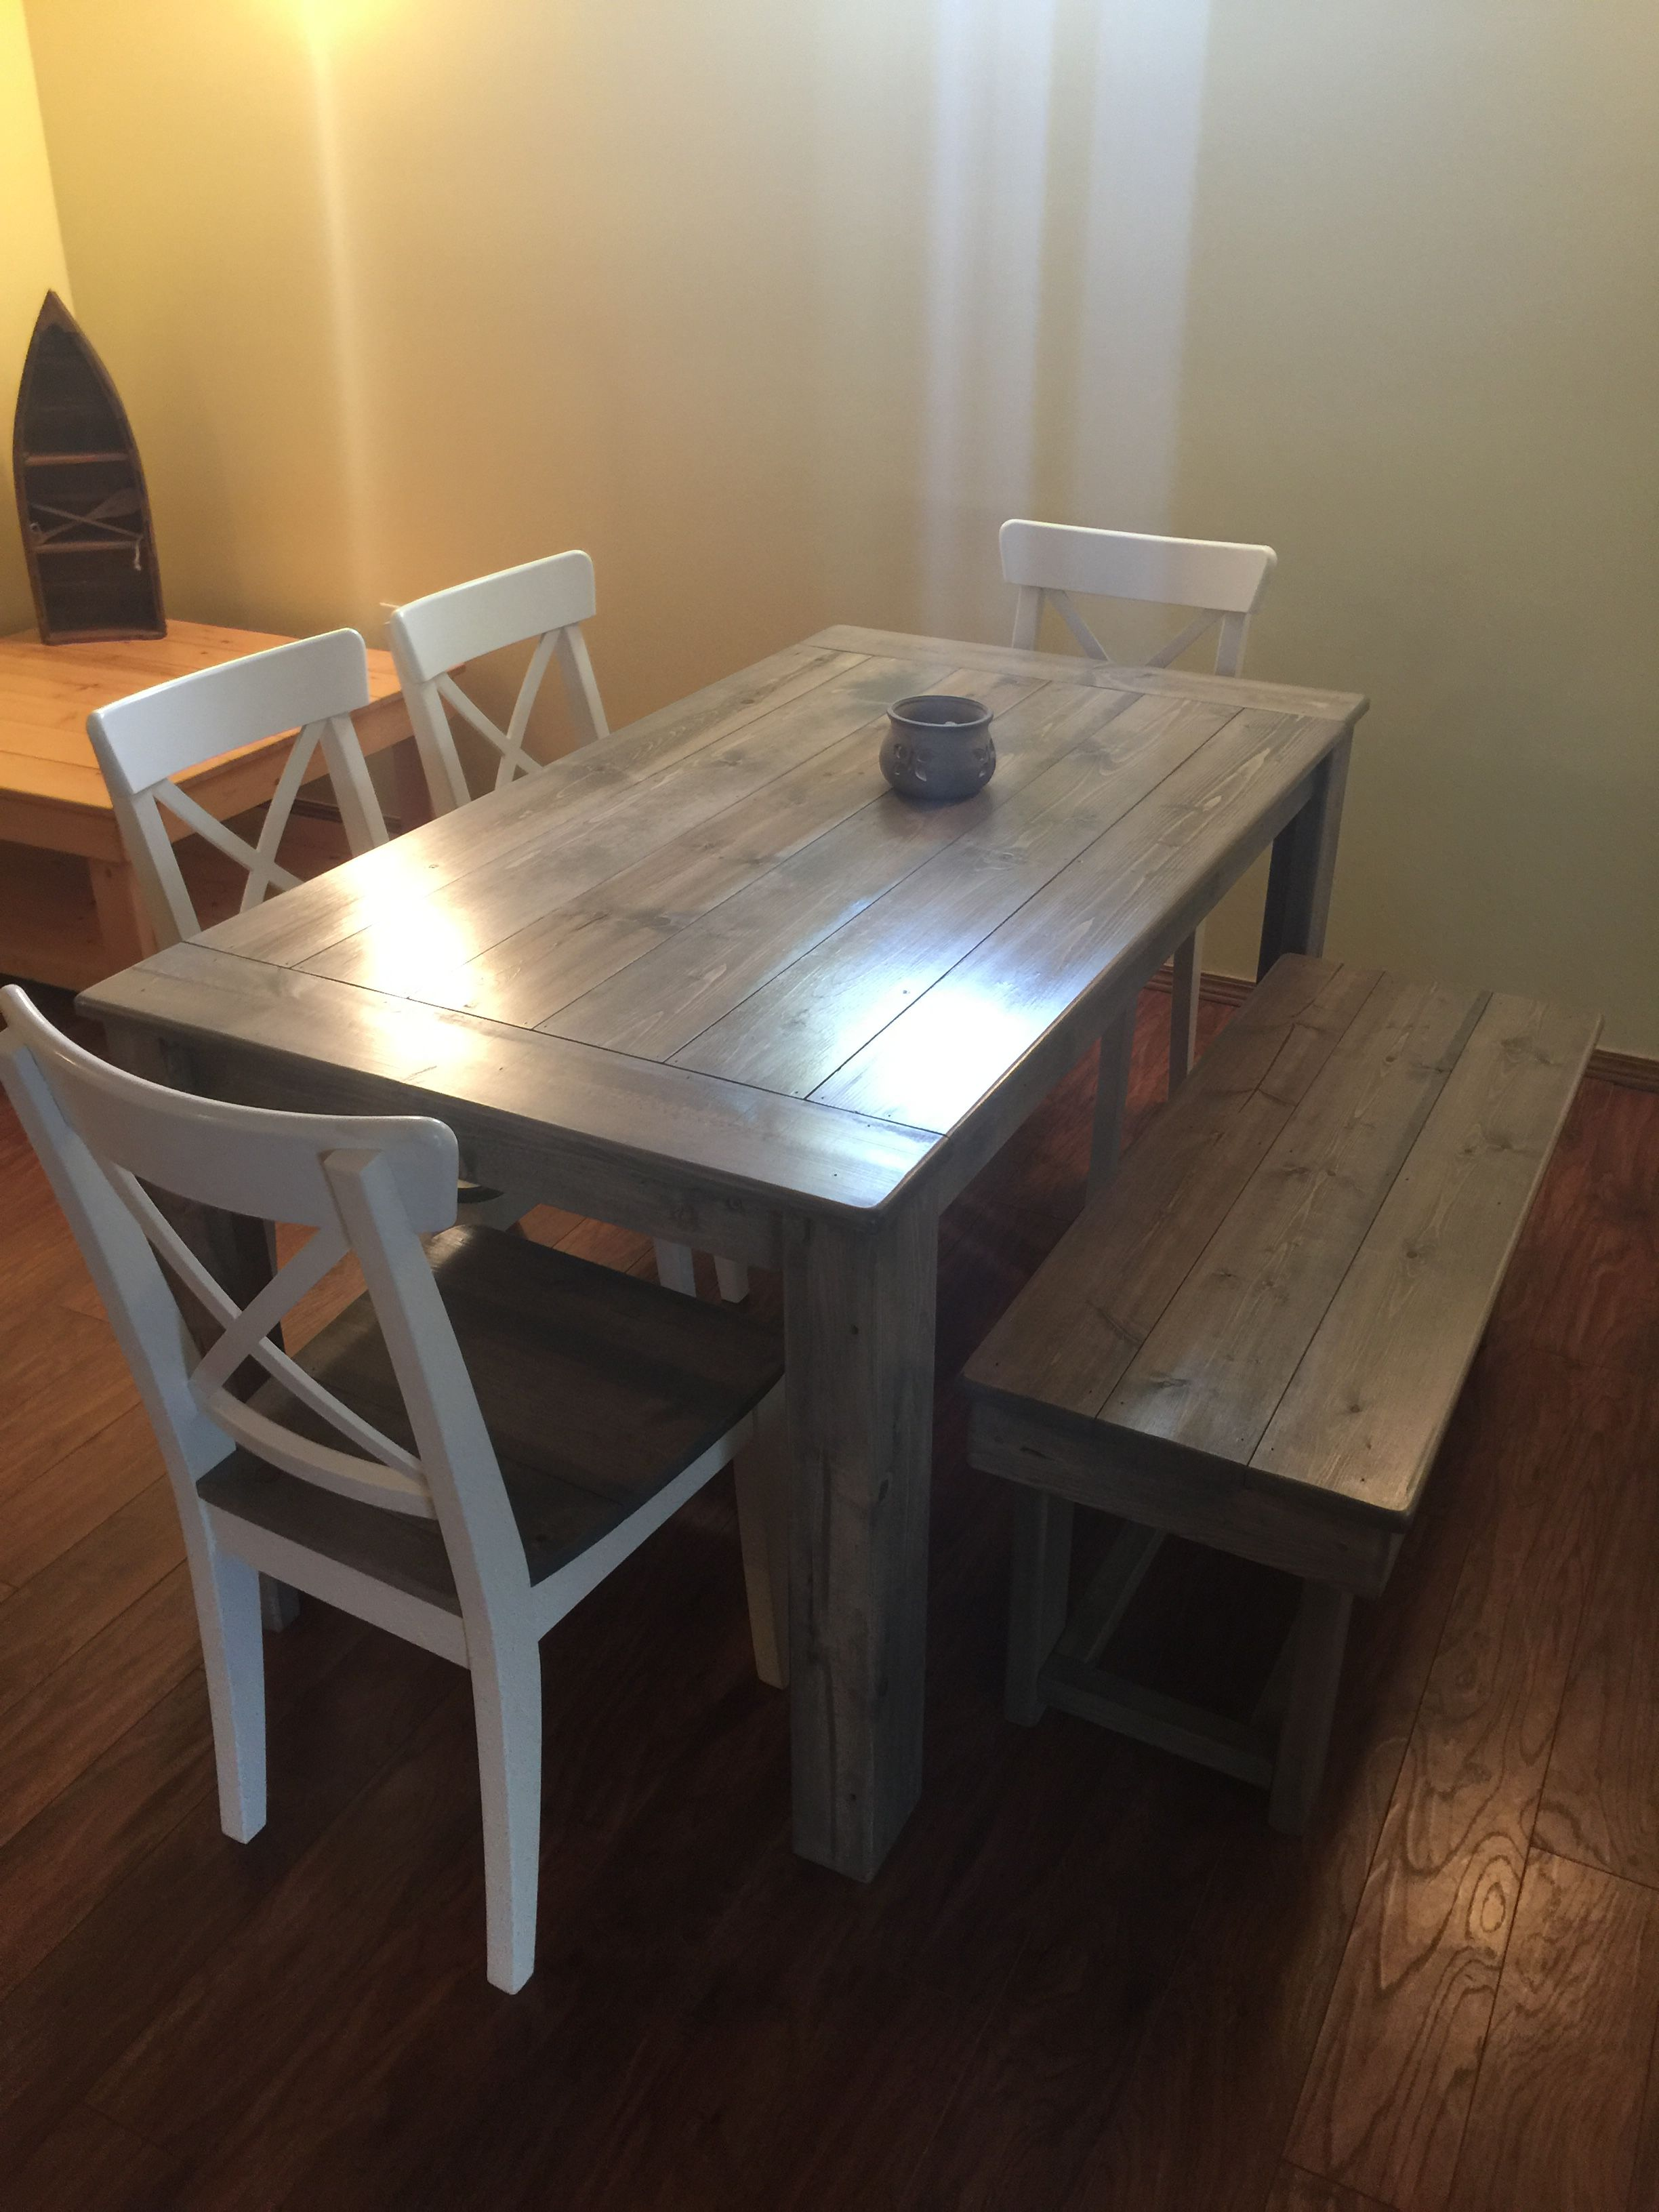 5ft Harvest Table And Chairs In The